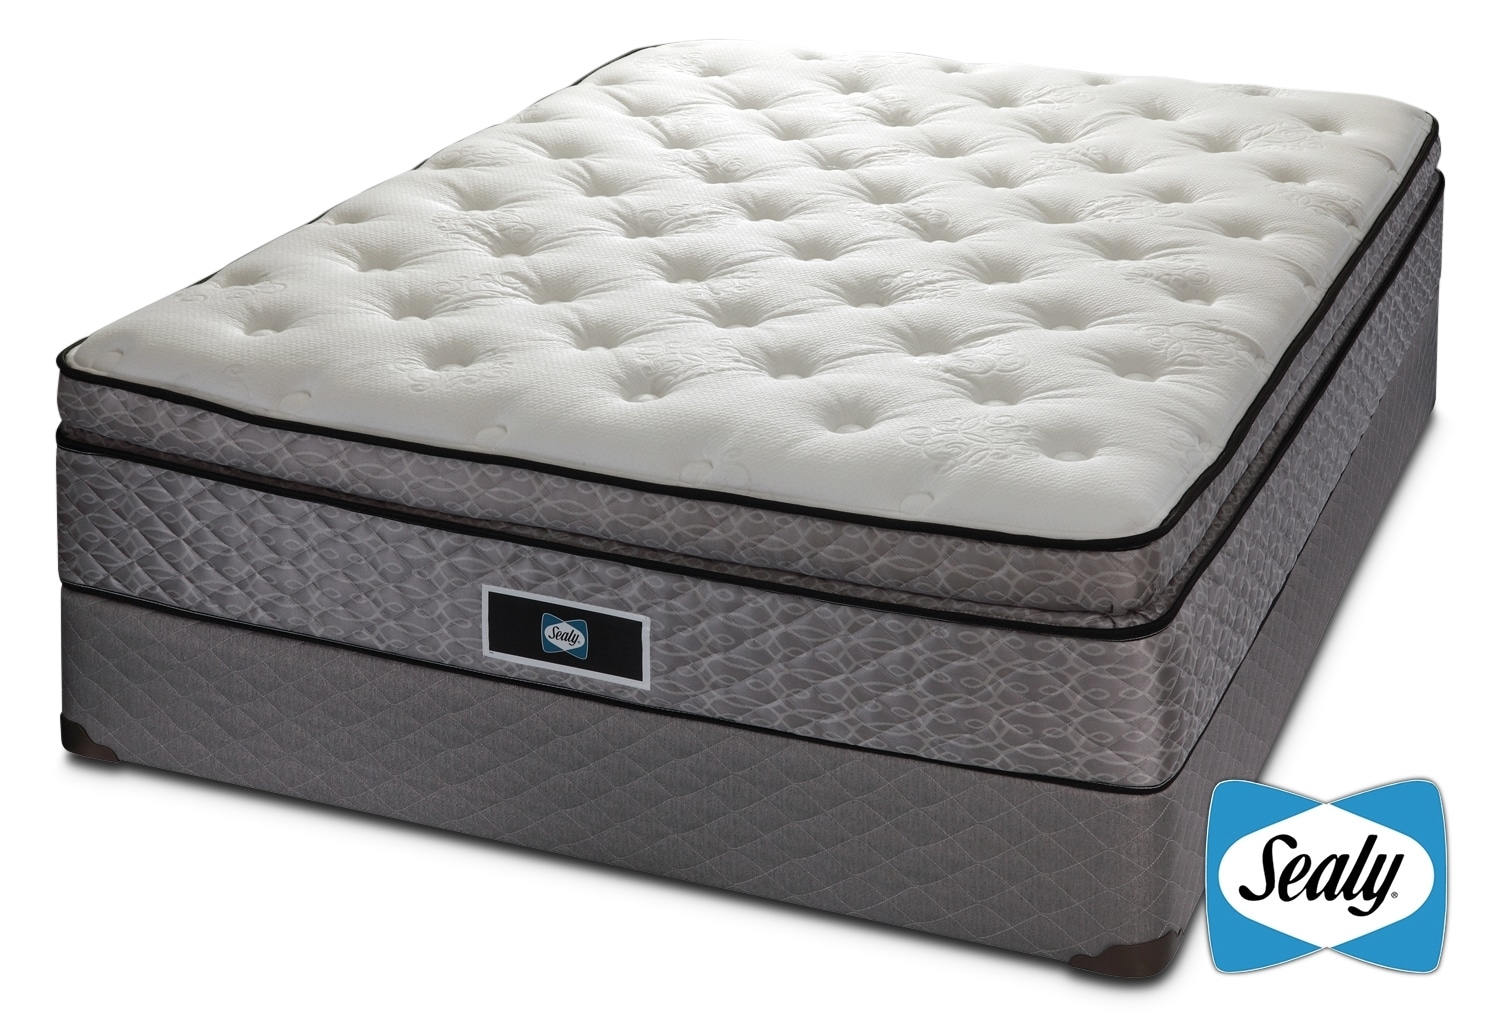 Sertapedic alameda extra firm queen bed mattress sale Queen mattress sale